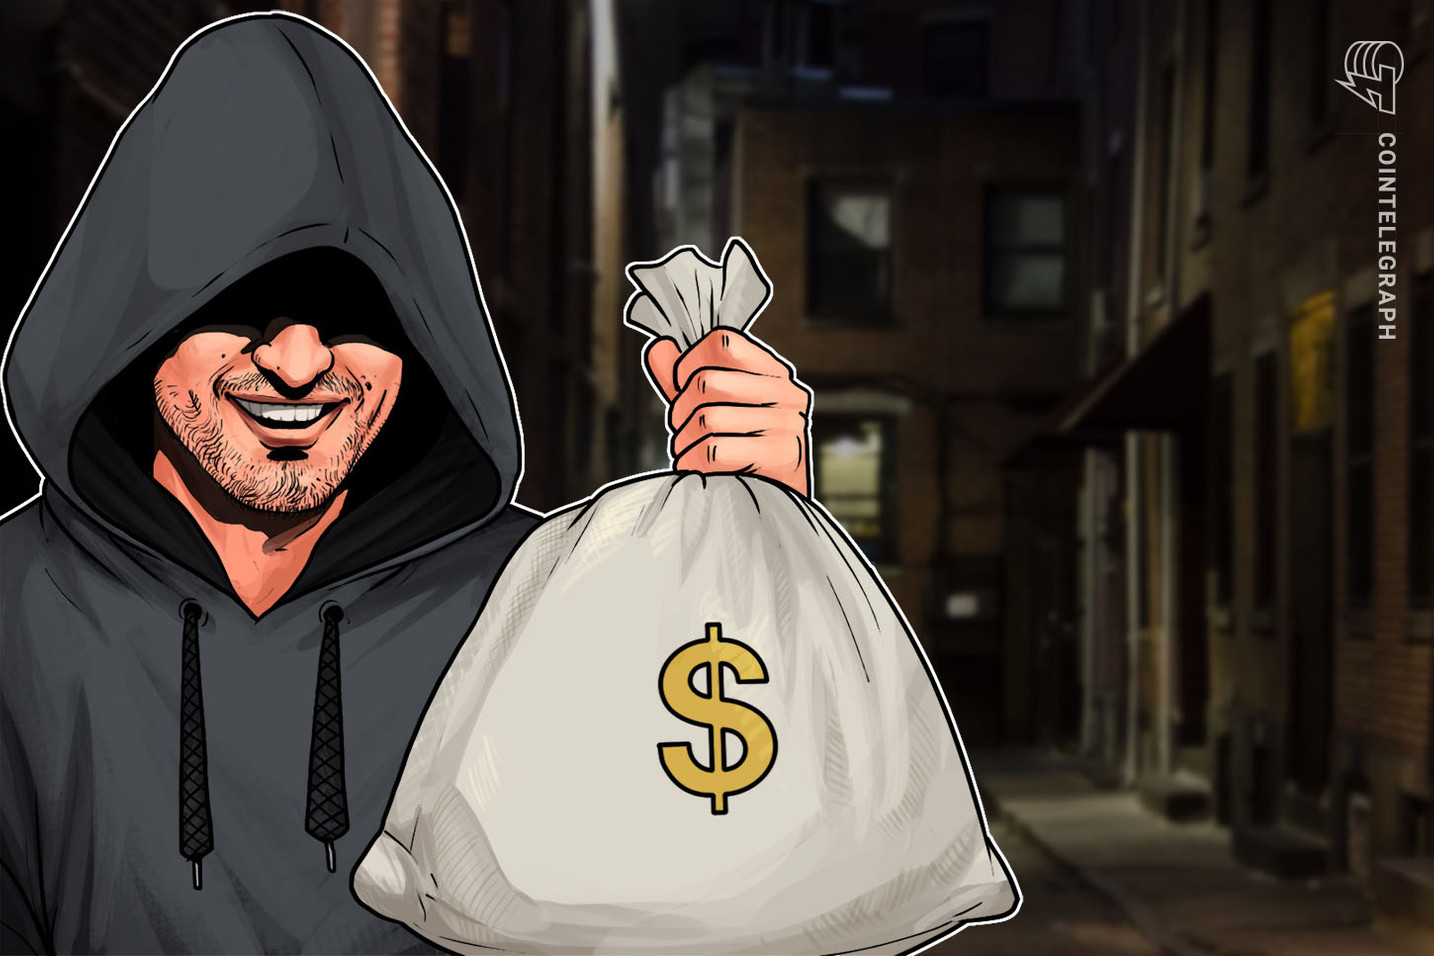 Armed robbers steal $450K from Hong Kong crypto trader